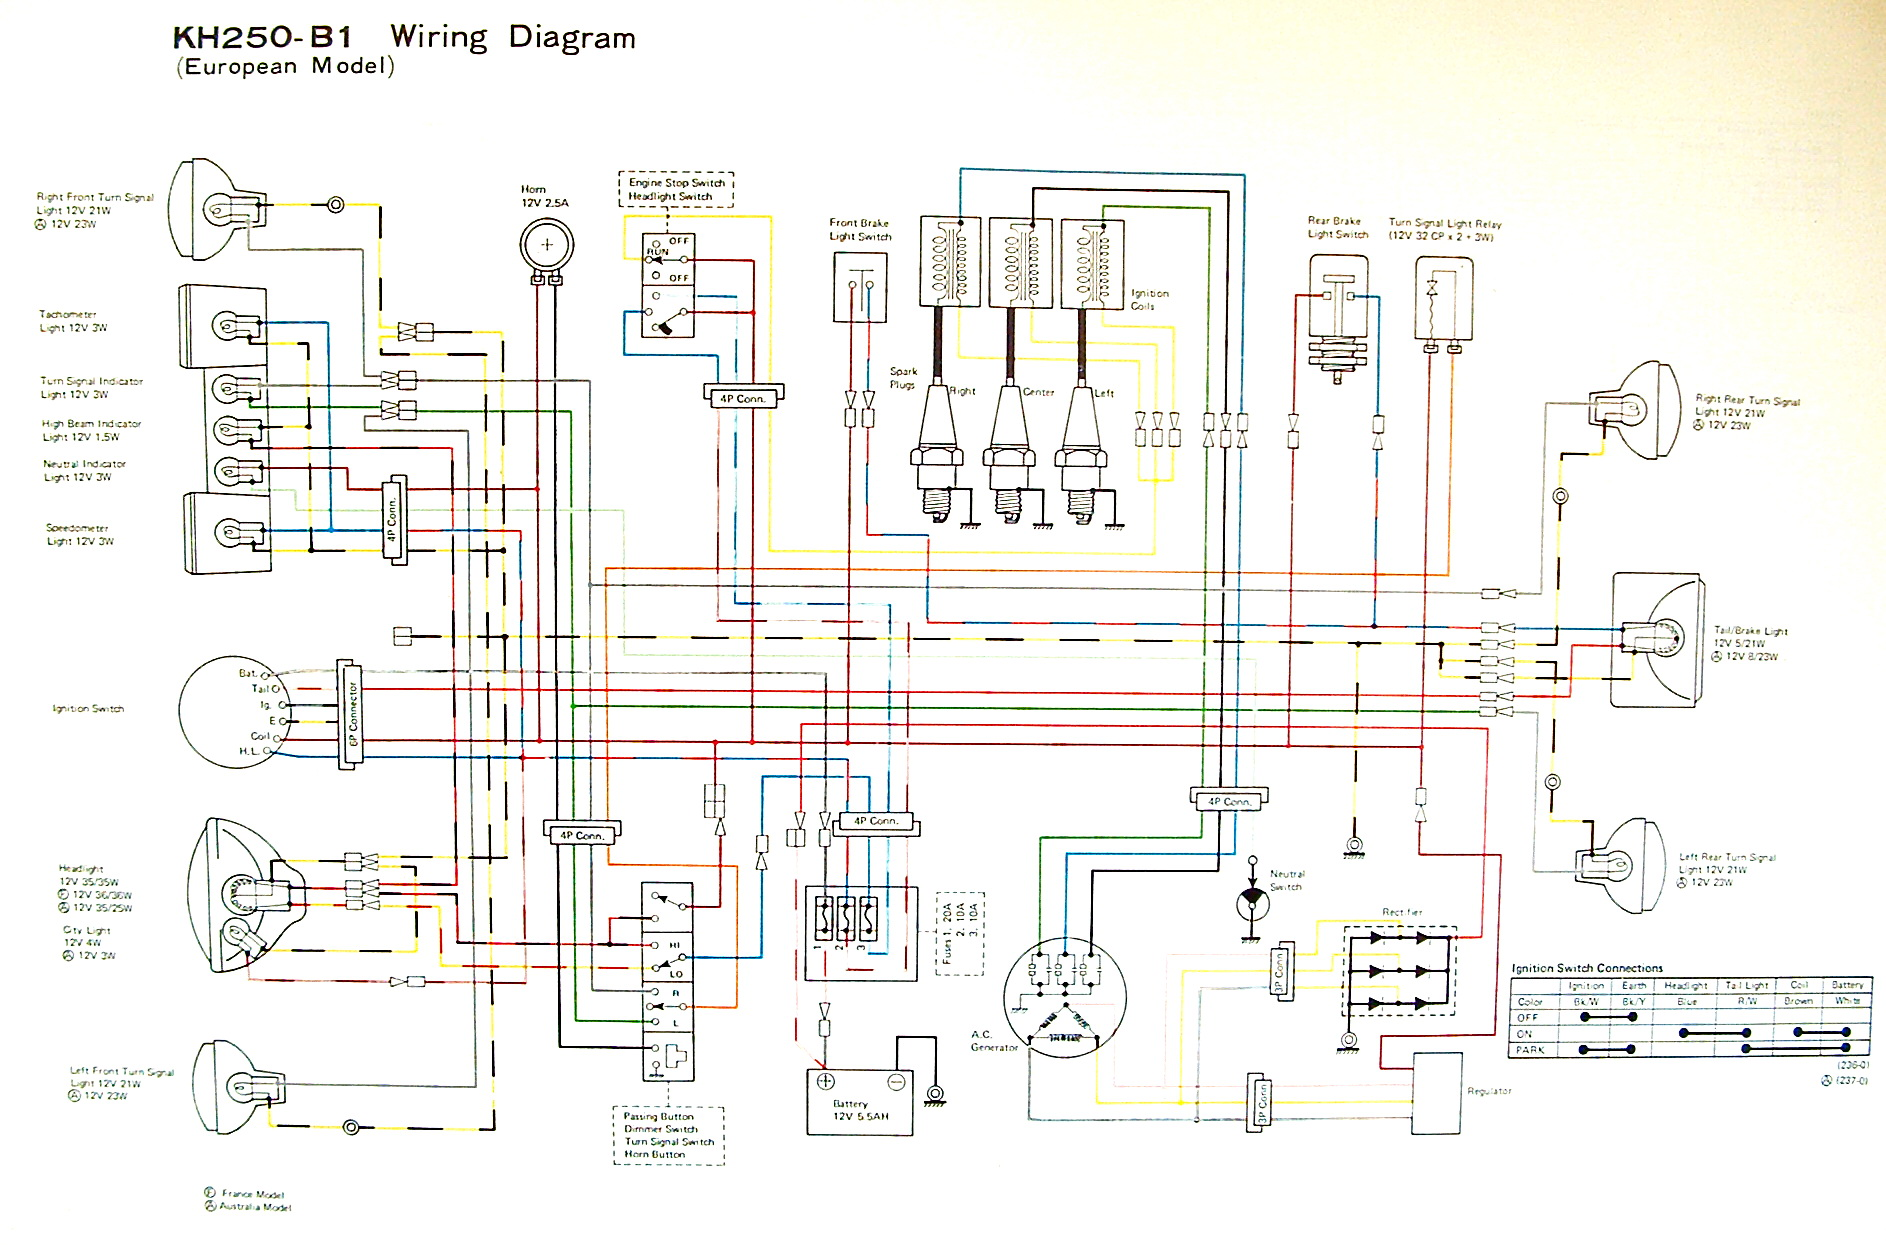 Kawasaki S3 Wiring Diagram Schematics Superior Broom Diagrams Peavey Nitro